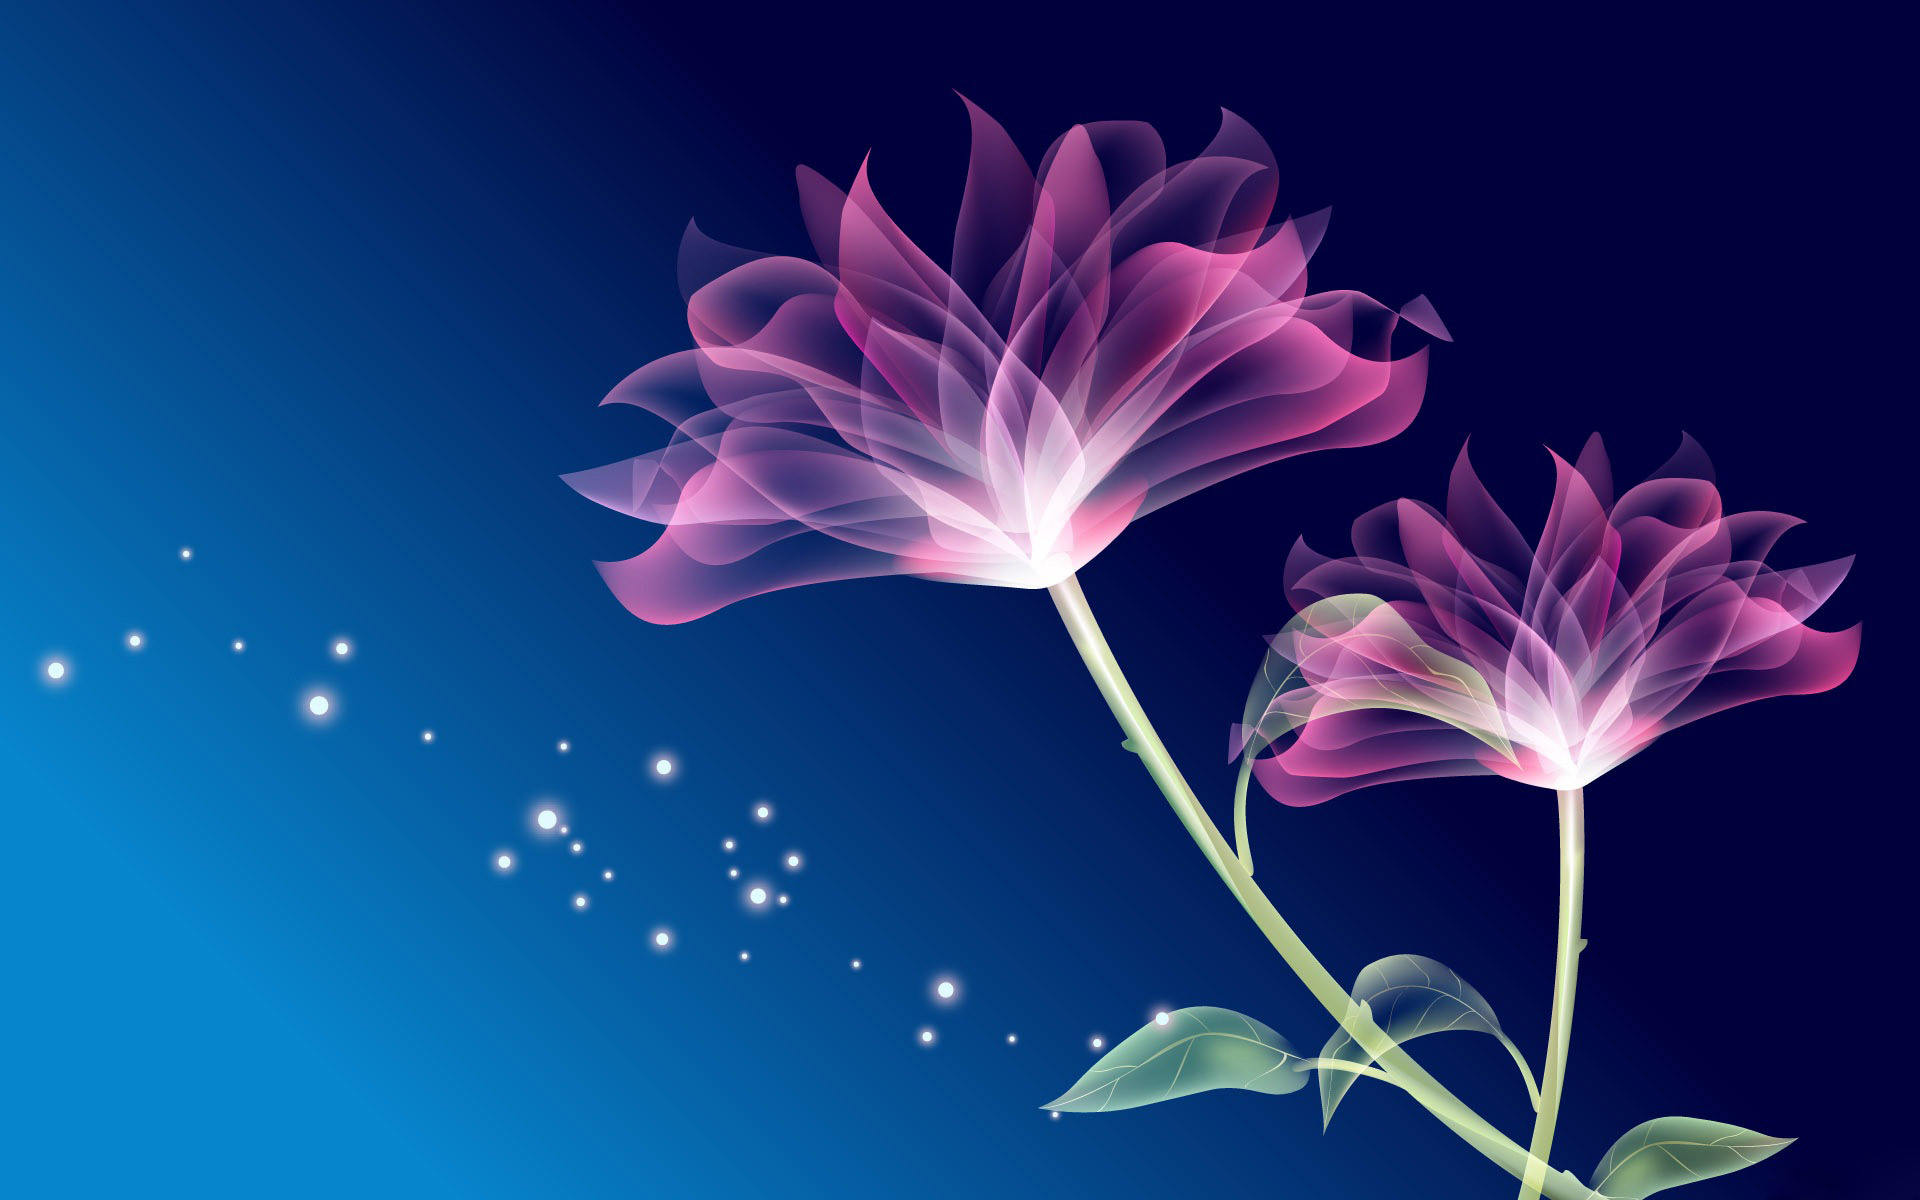 33 units of 3d Flower Wallpaper